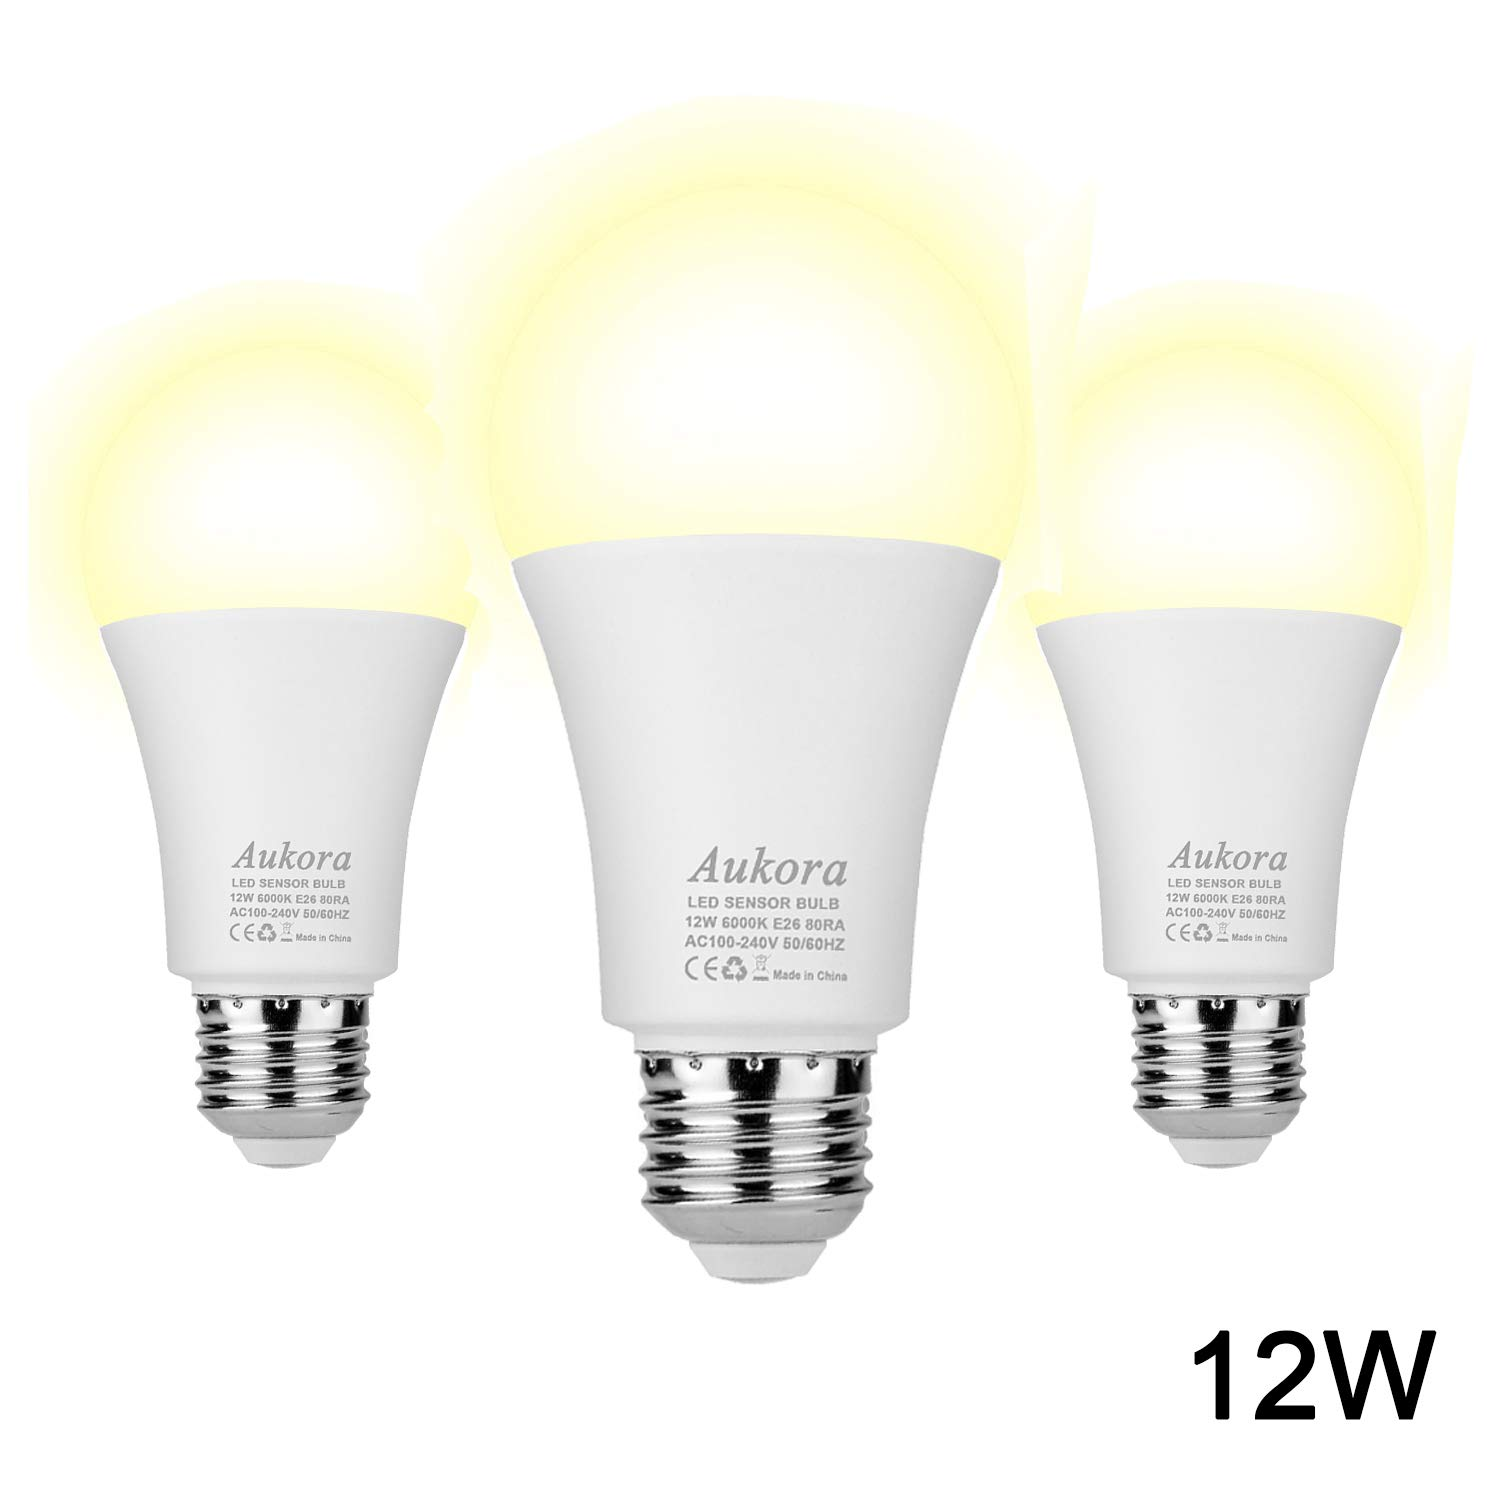 Dusk to Dawn Light Bulb, Aukora Smart Sensor LED Light Bulb, 12W (100-Watt Equivalent), 3000Kelvin, E26 Base Automatic On/Off Led Bulb Outdoor/Indoor for Porch Garage Patio Garden(Warm White, 3 Pack)